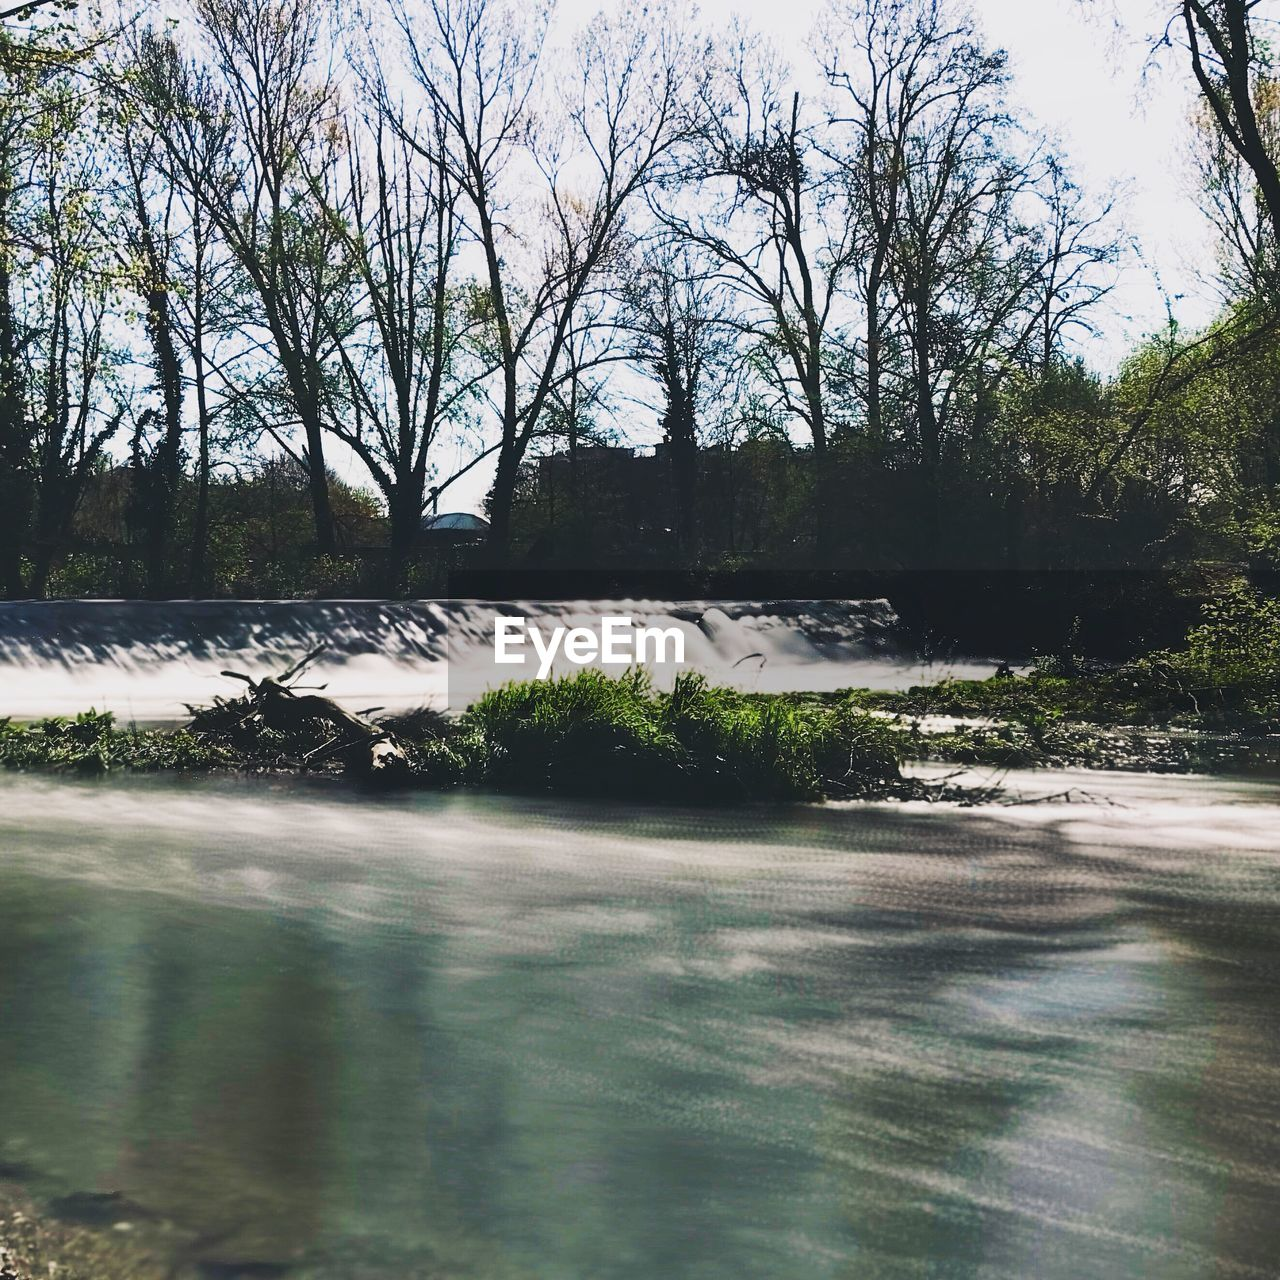 tree, plant, water, no people, day, nature, bare tree, architecture, beauty in nature, outdoors, scenics - nature, waterfront, tranquility, built structure, sky, growth, river, motion, flowing water, flowing